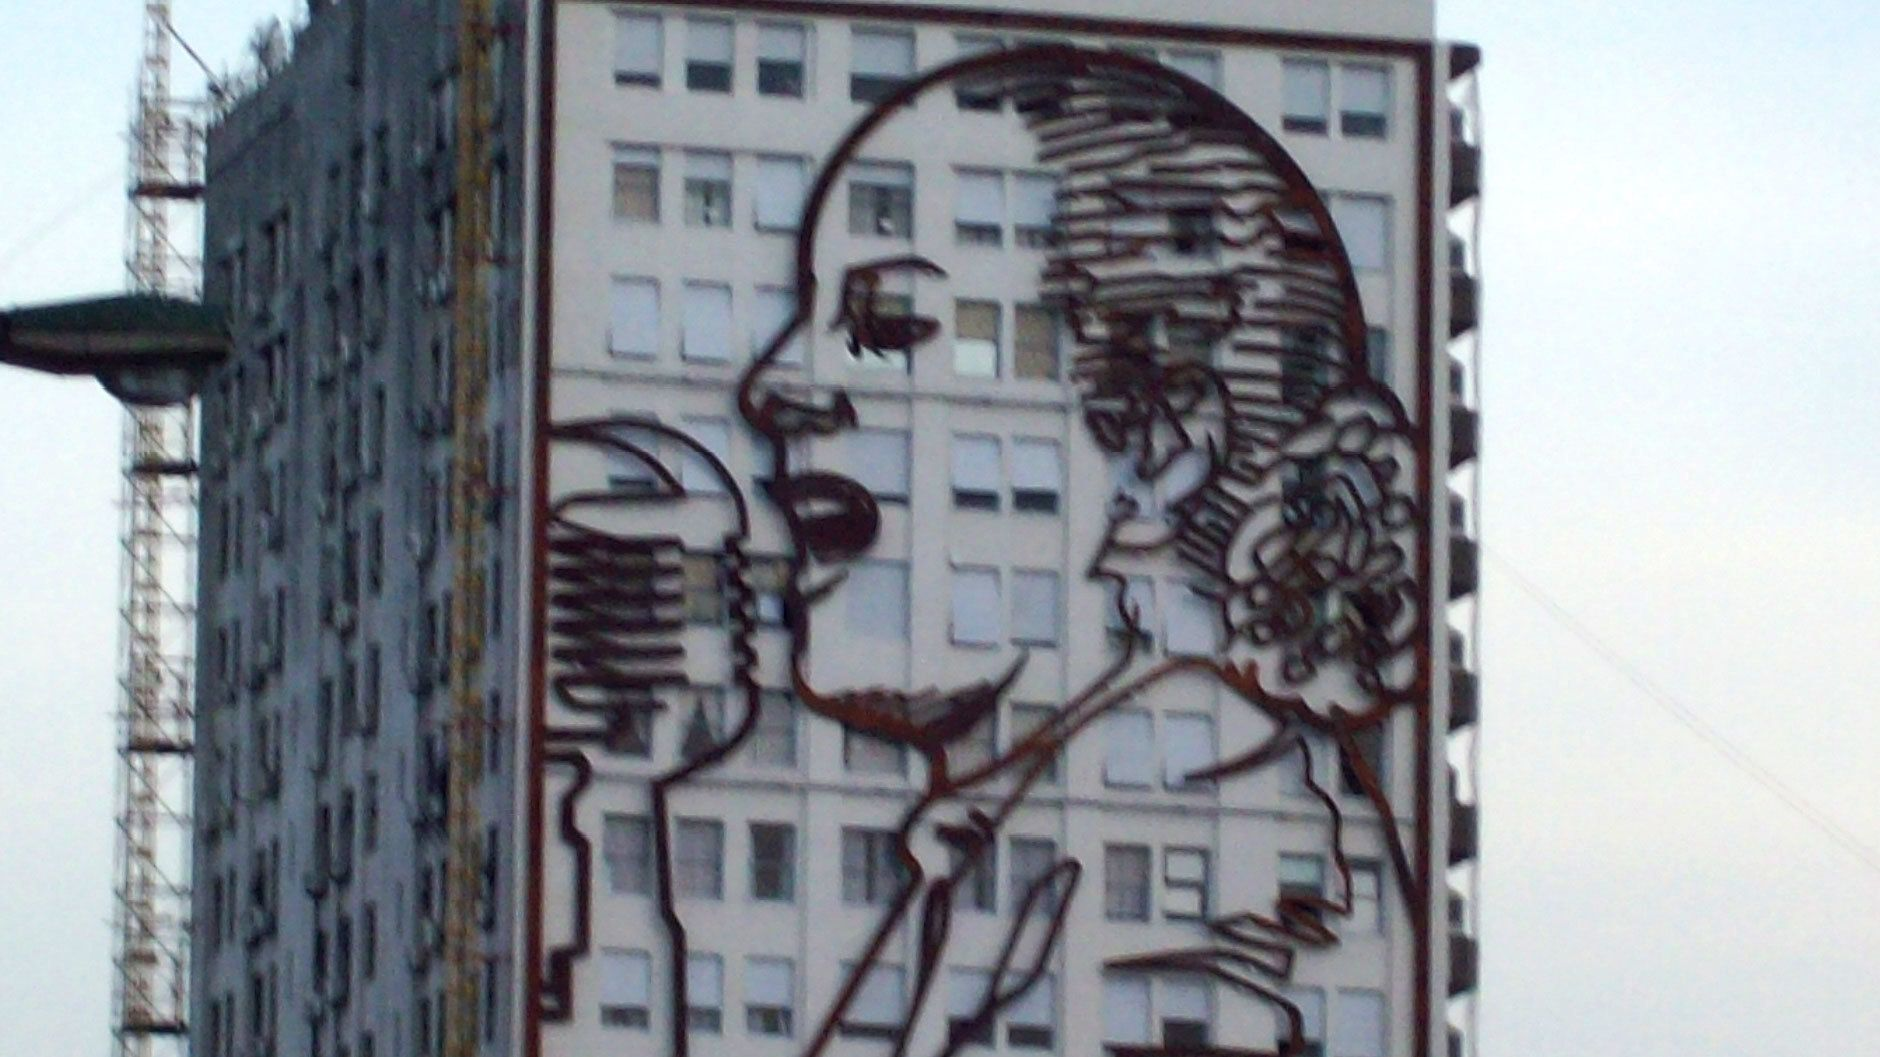 Evita illustration on the side of a building in Argentina